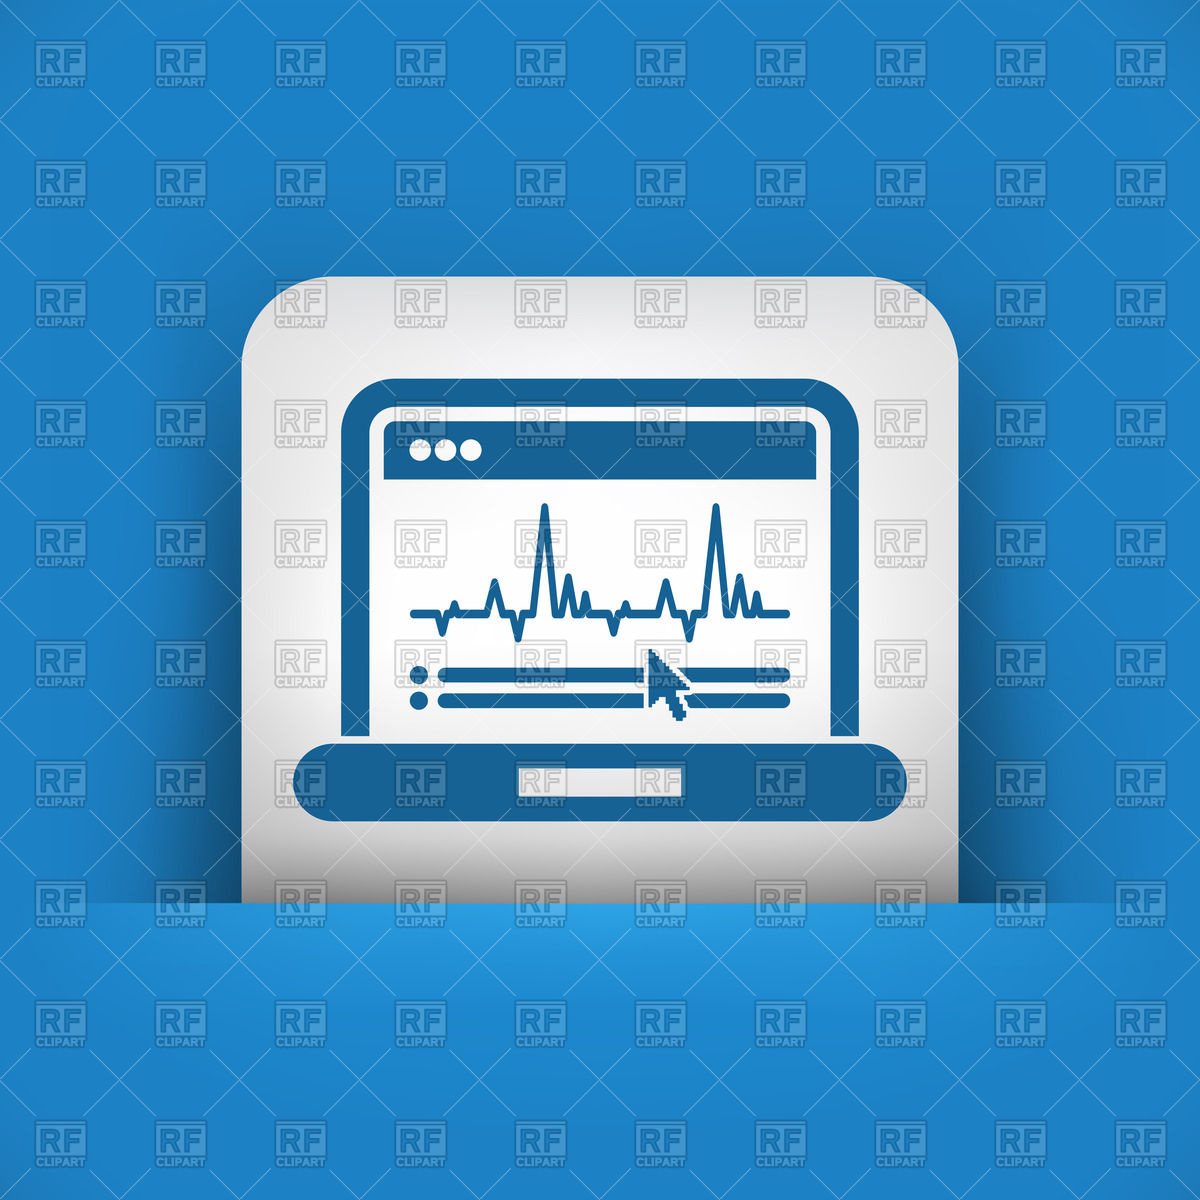 Heartbeat (pulse trace) cardiogram on laptop's screen Vector Image.